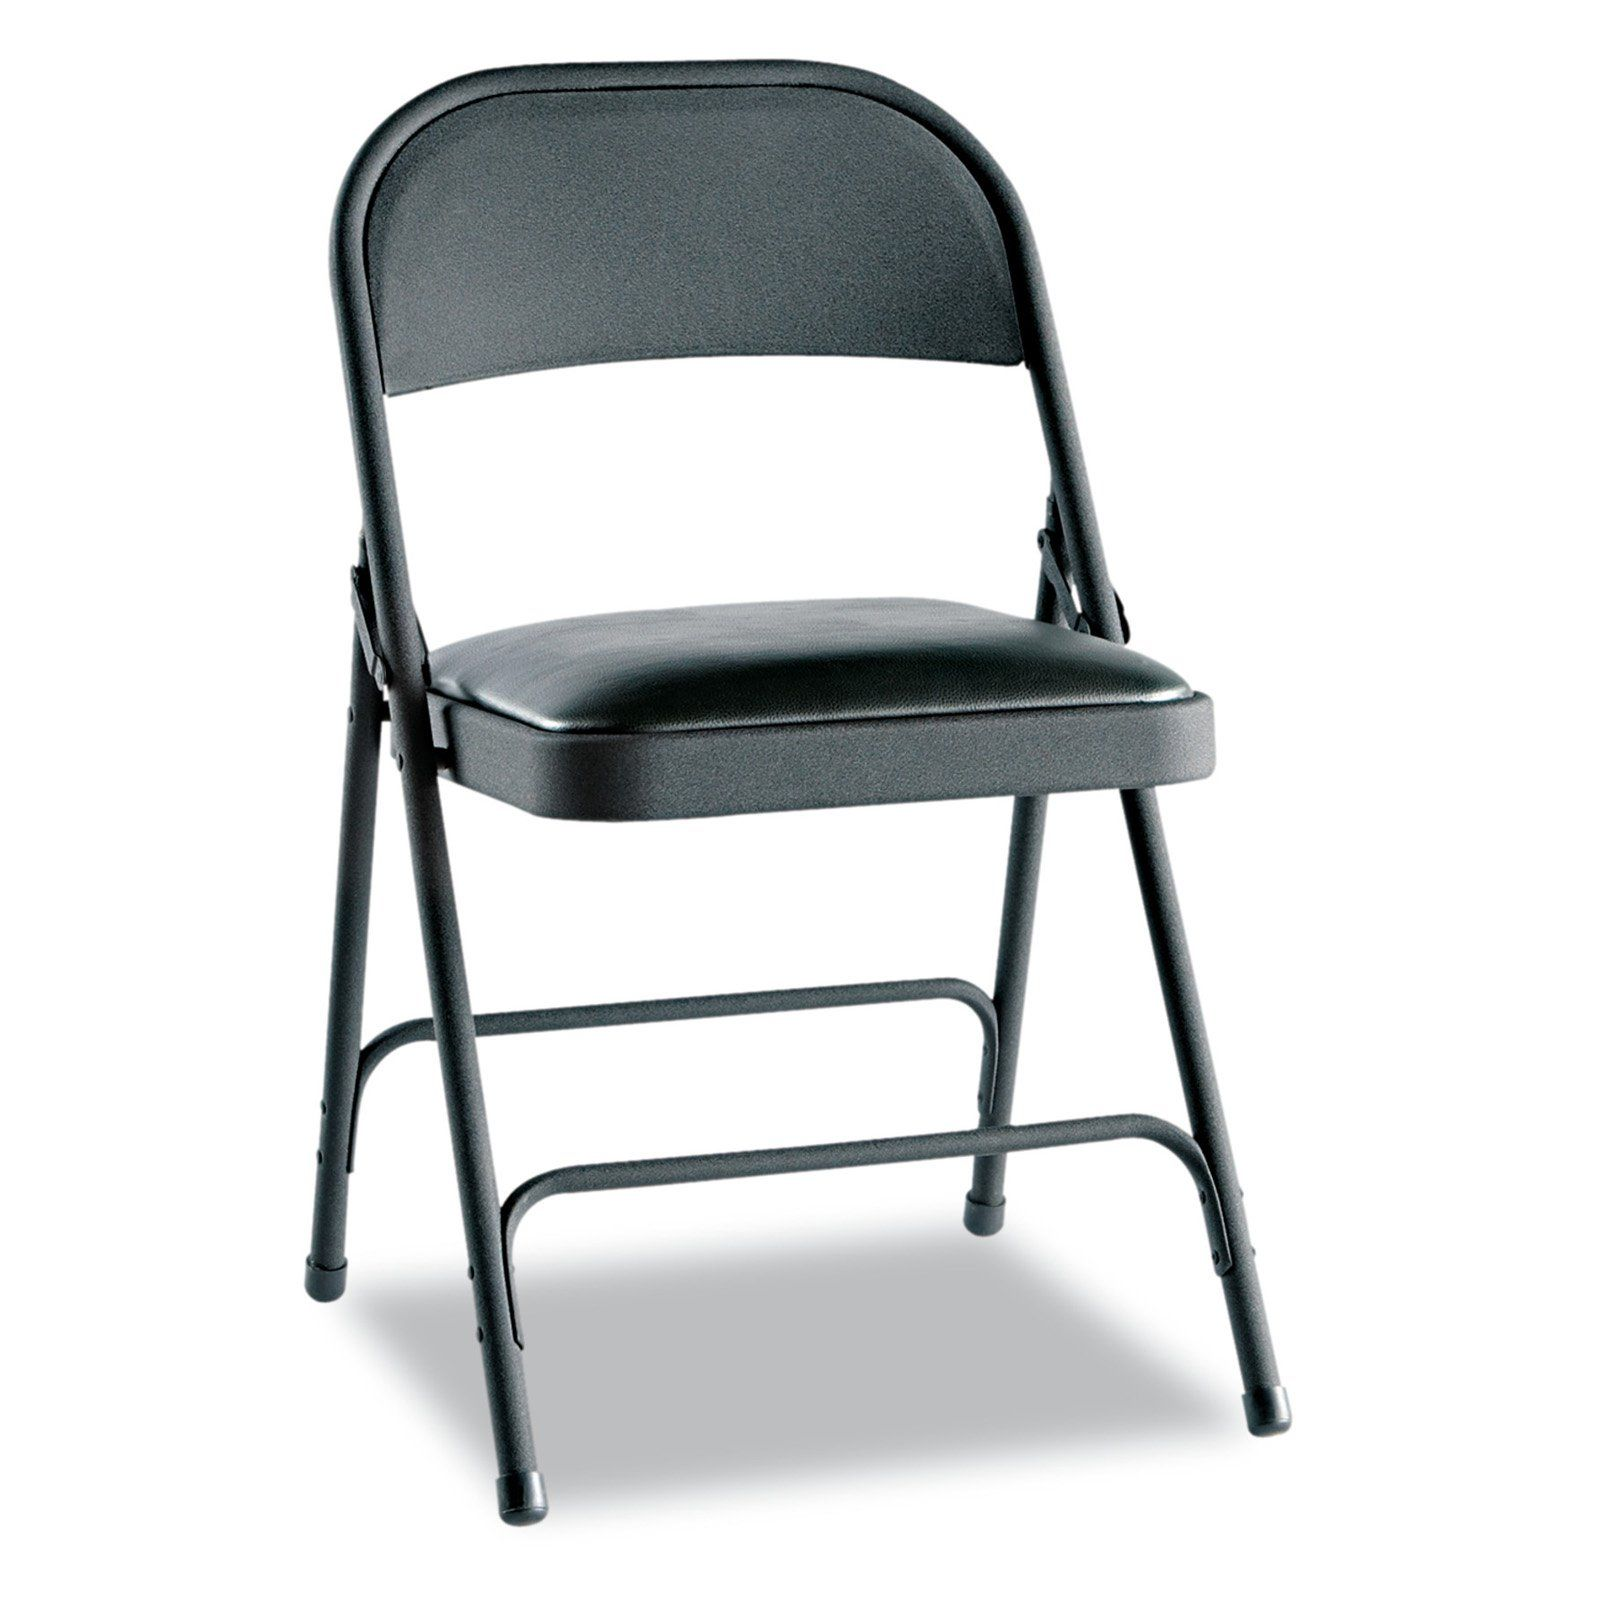 Alera Steel Folding Chair With Padded Seat Set Of 4 Graphite